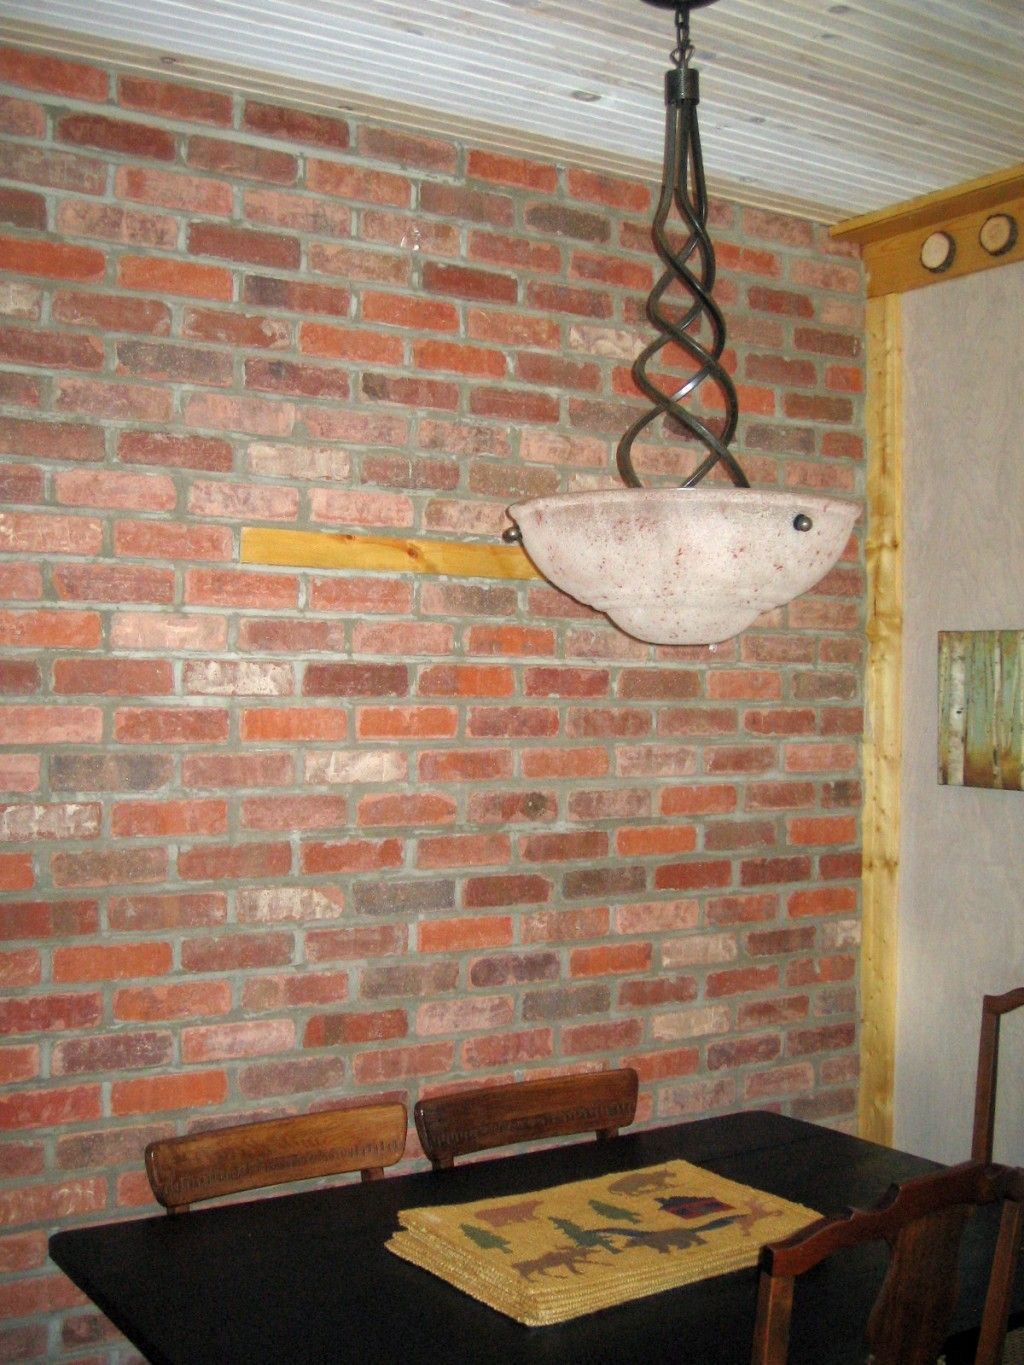 Amazing Interior Brick Veneer Is Easy To Install With These Tried And True Steps.  See How Adding A Thin Brick Wall Using Tumbled Bricks Enhances A Rustic  Design.